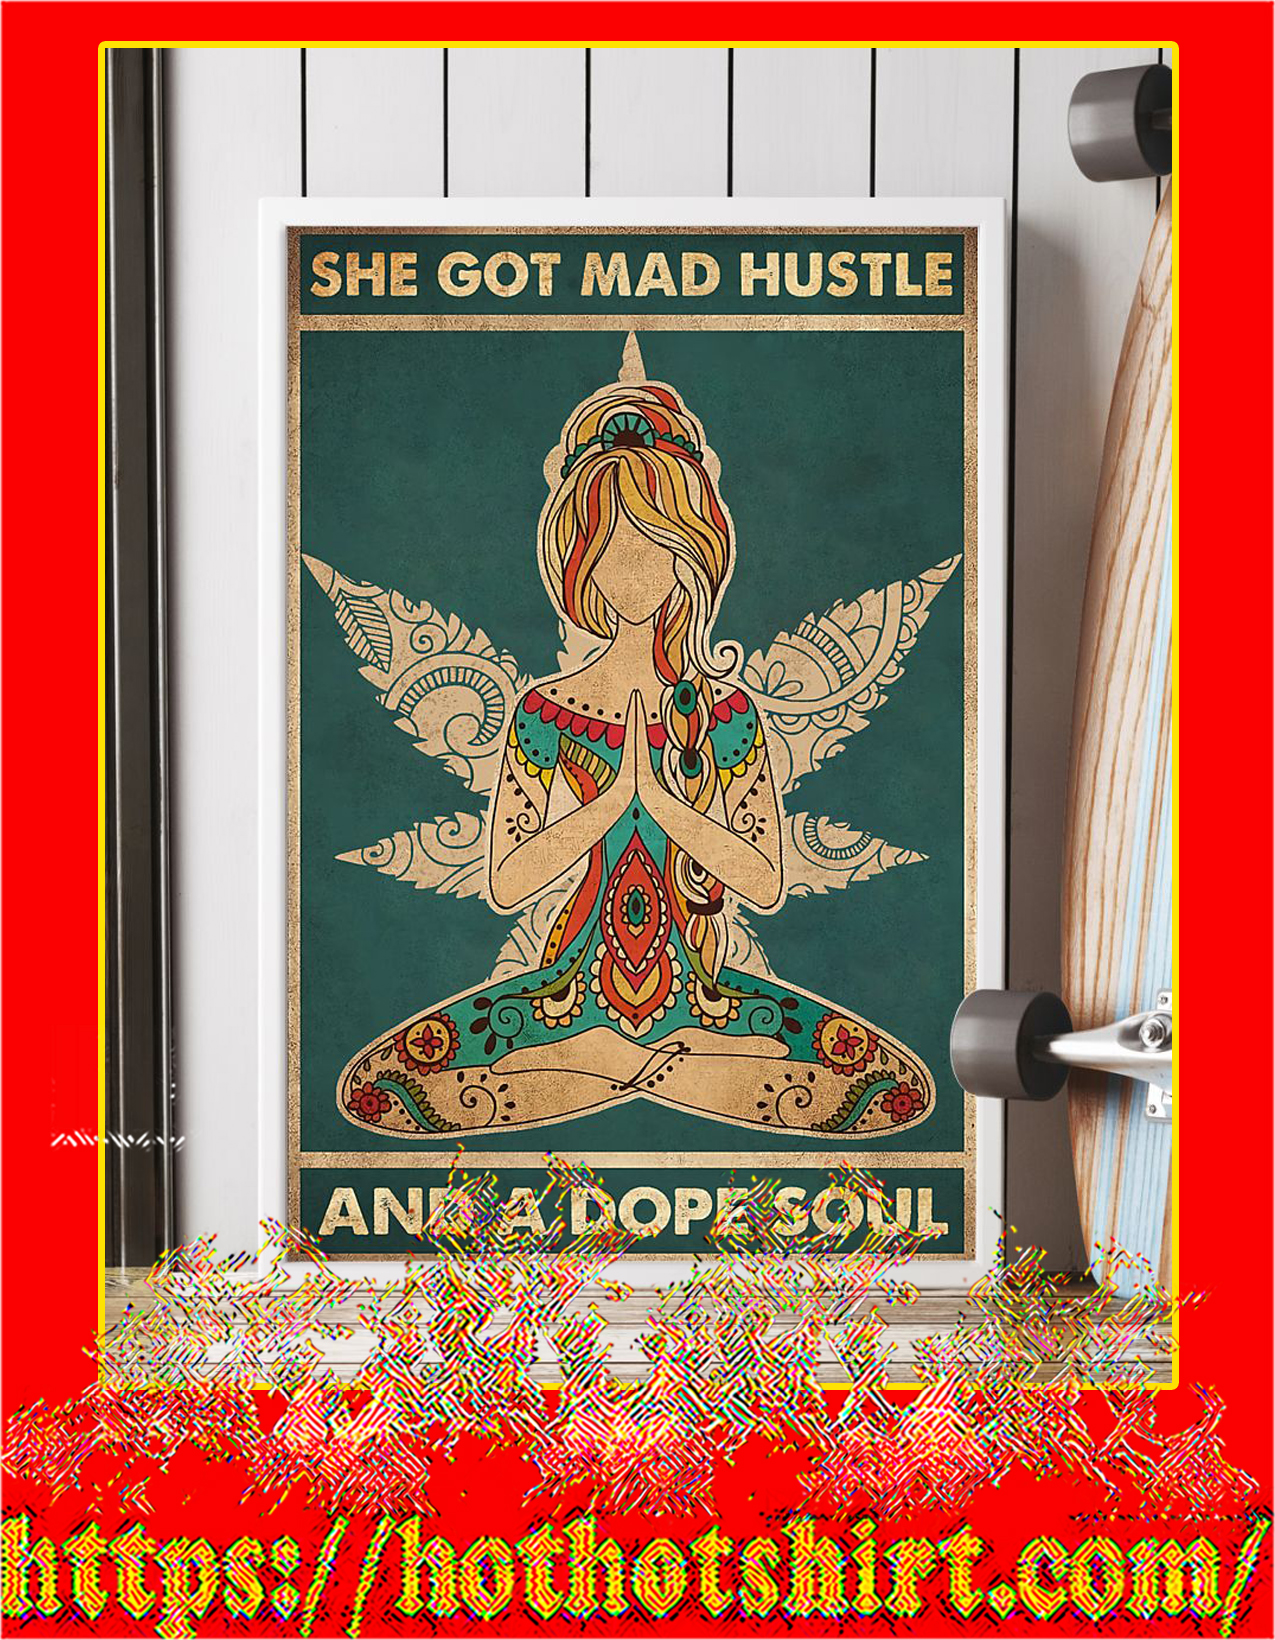 She got mad hustle and a dope soul yoga poster - A4